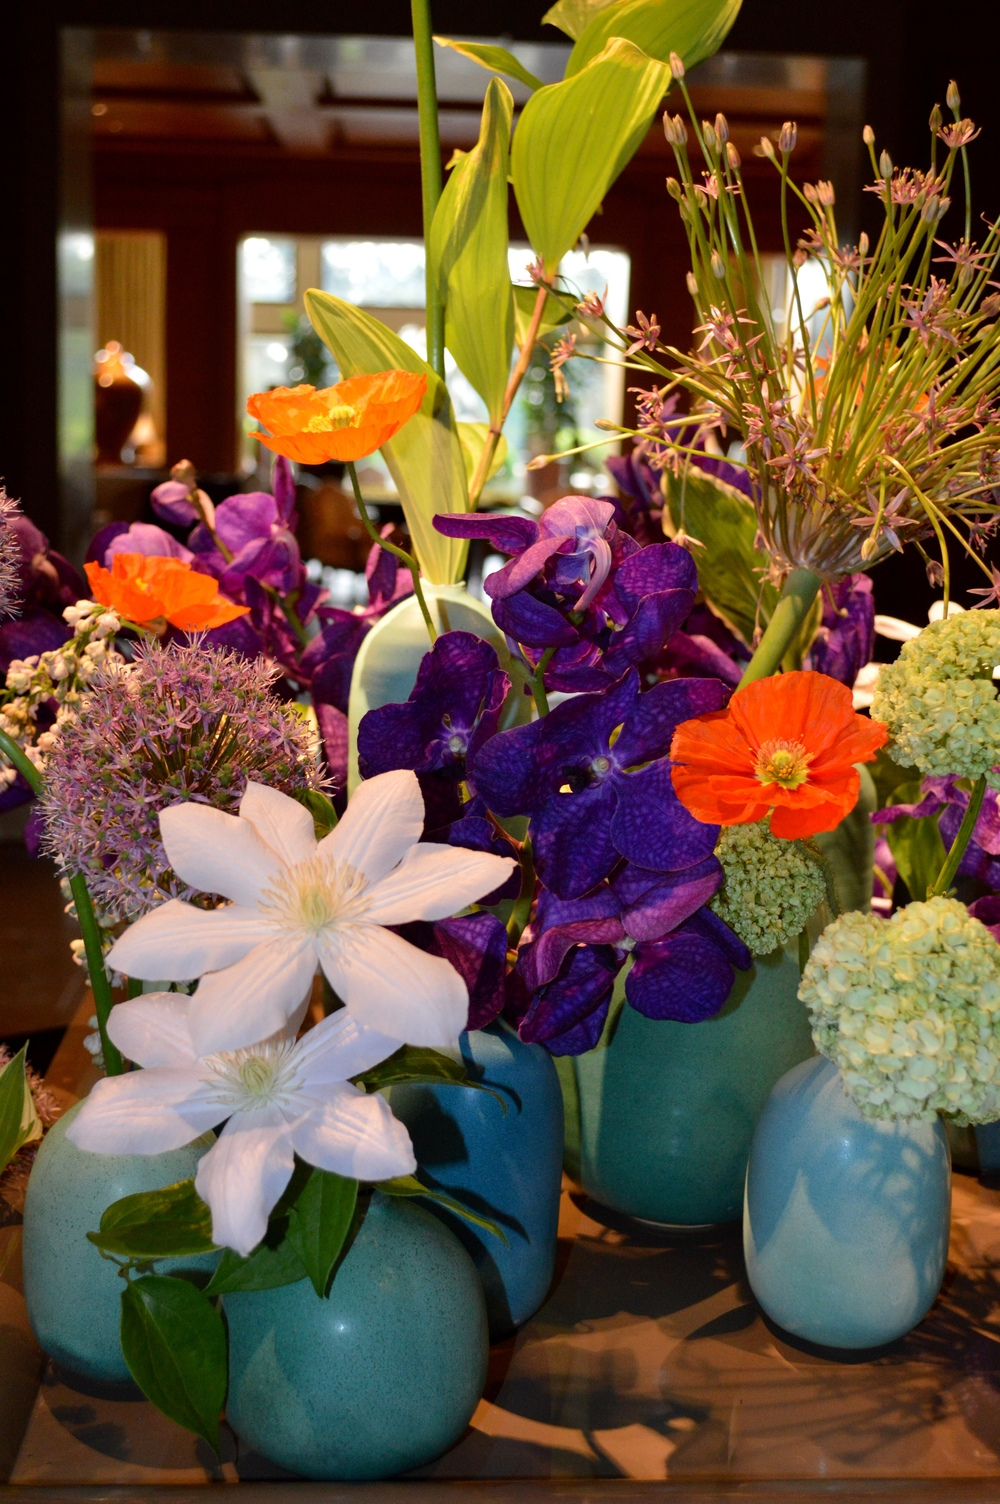 LaurenSchwaiger-Blog-The-Umstead-Hotel-Lobby-Flowers.jpg